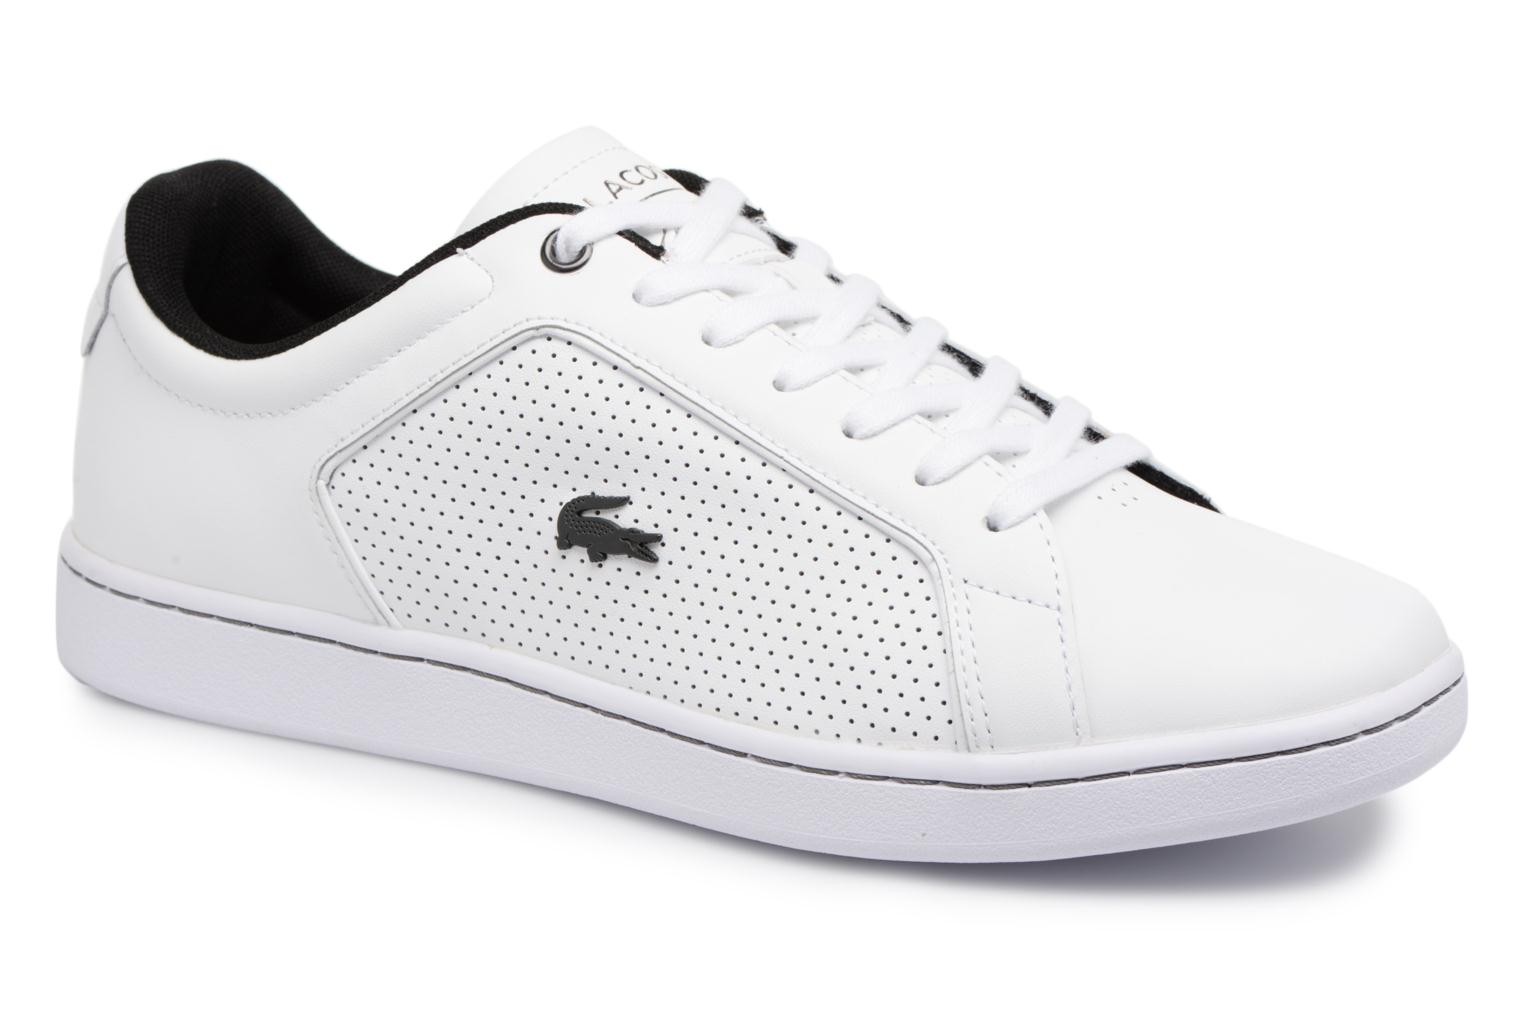 Chaussures Lacoste Carnaby Pointure 25 Fashion pour bébé 7gAvviePS